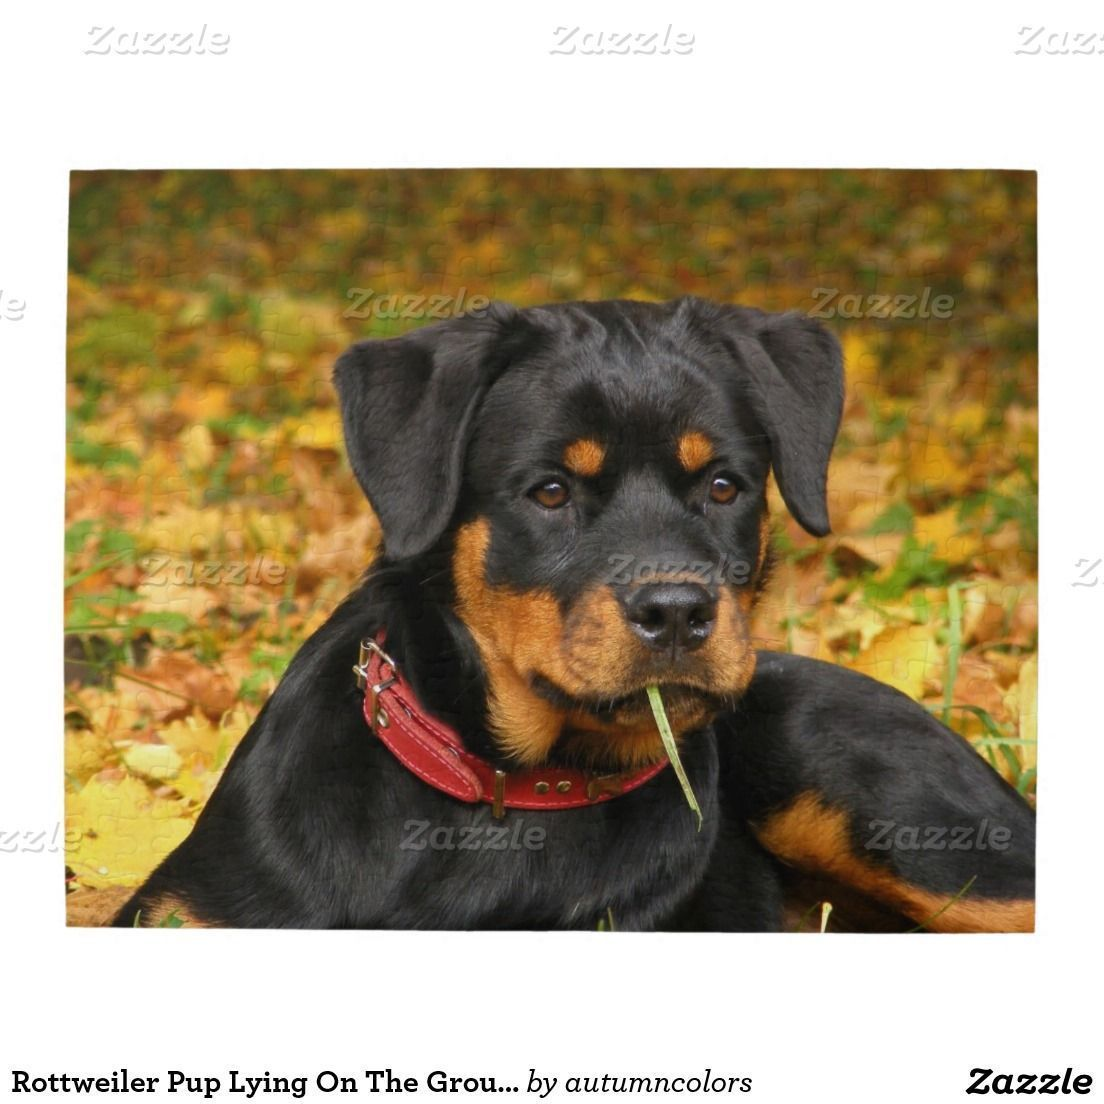 Rottweiler Rottweiler Pup Lying On The Ground In Forest Puzzle